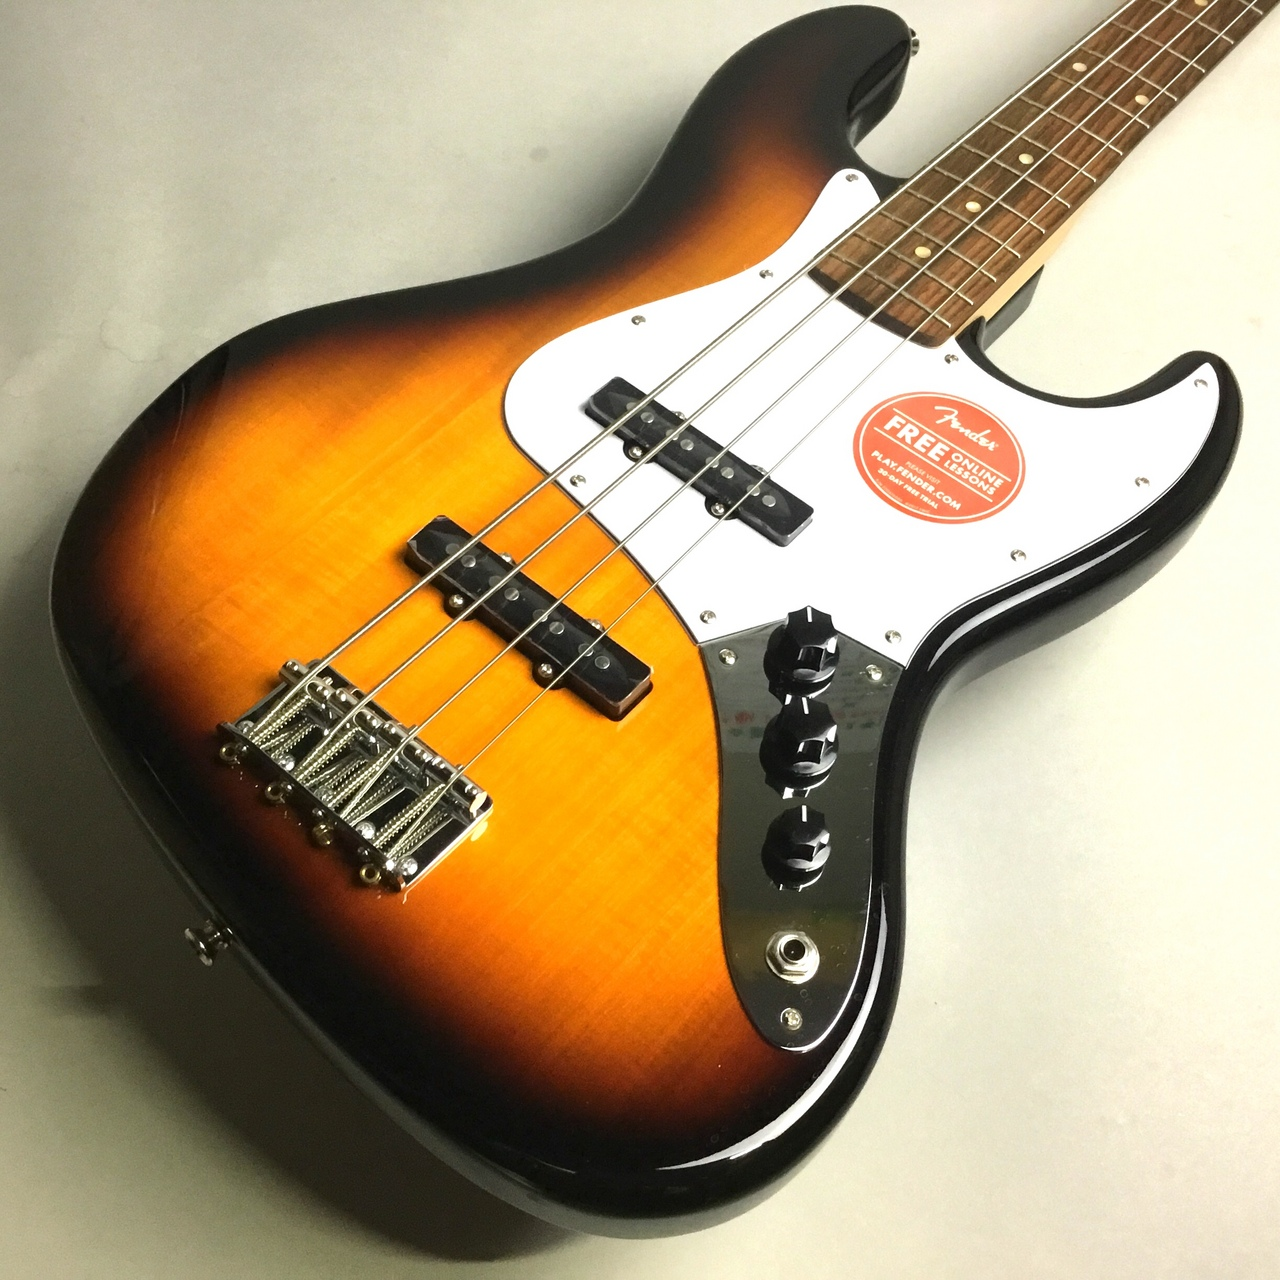 Squier by Fender Affinity JB BSB